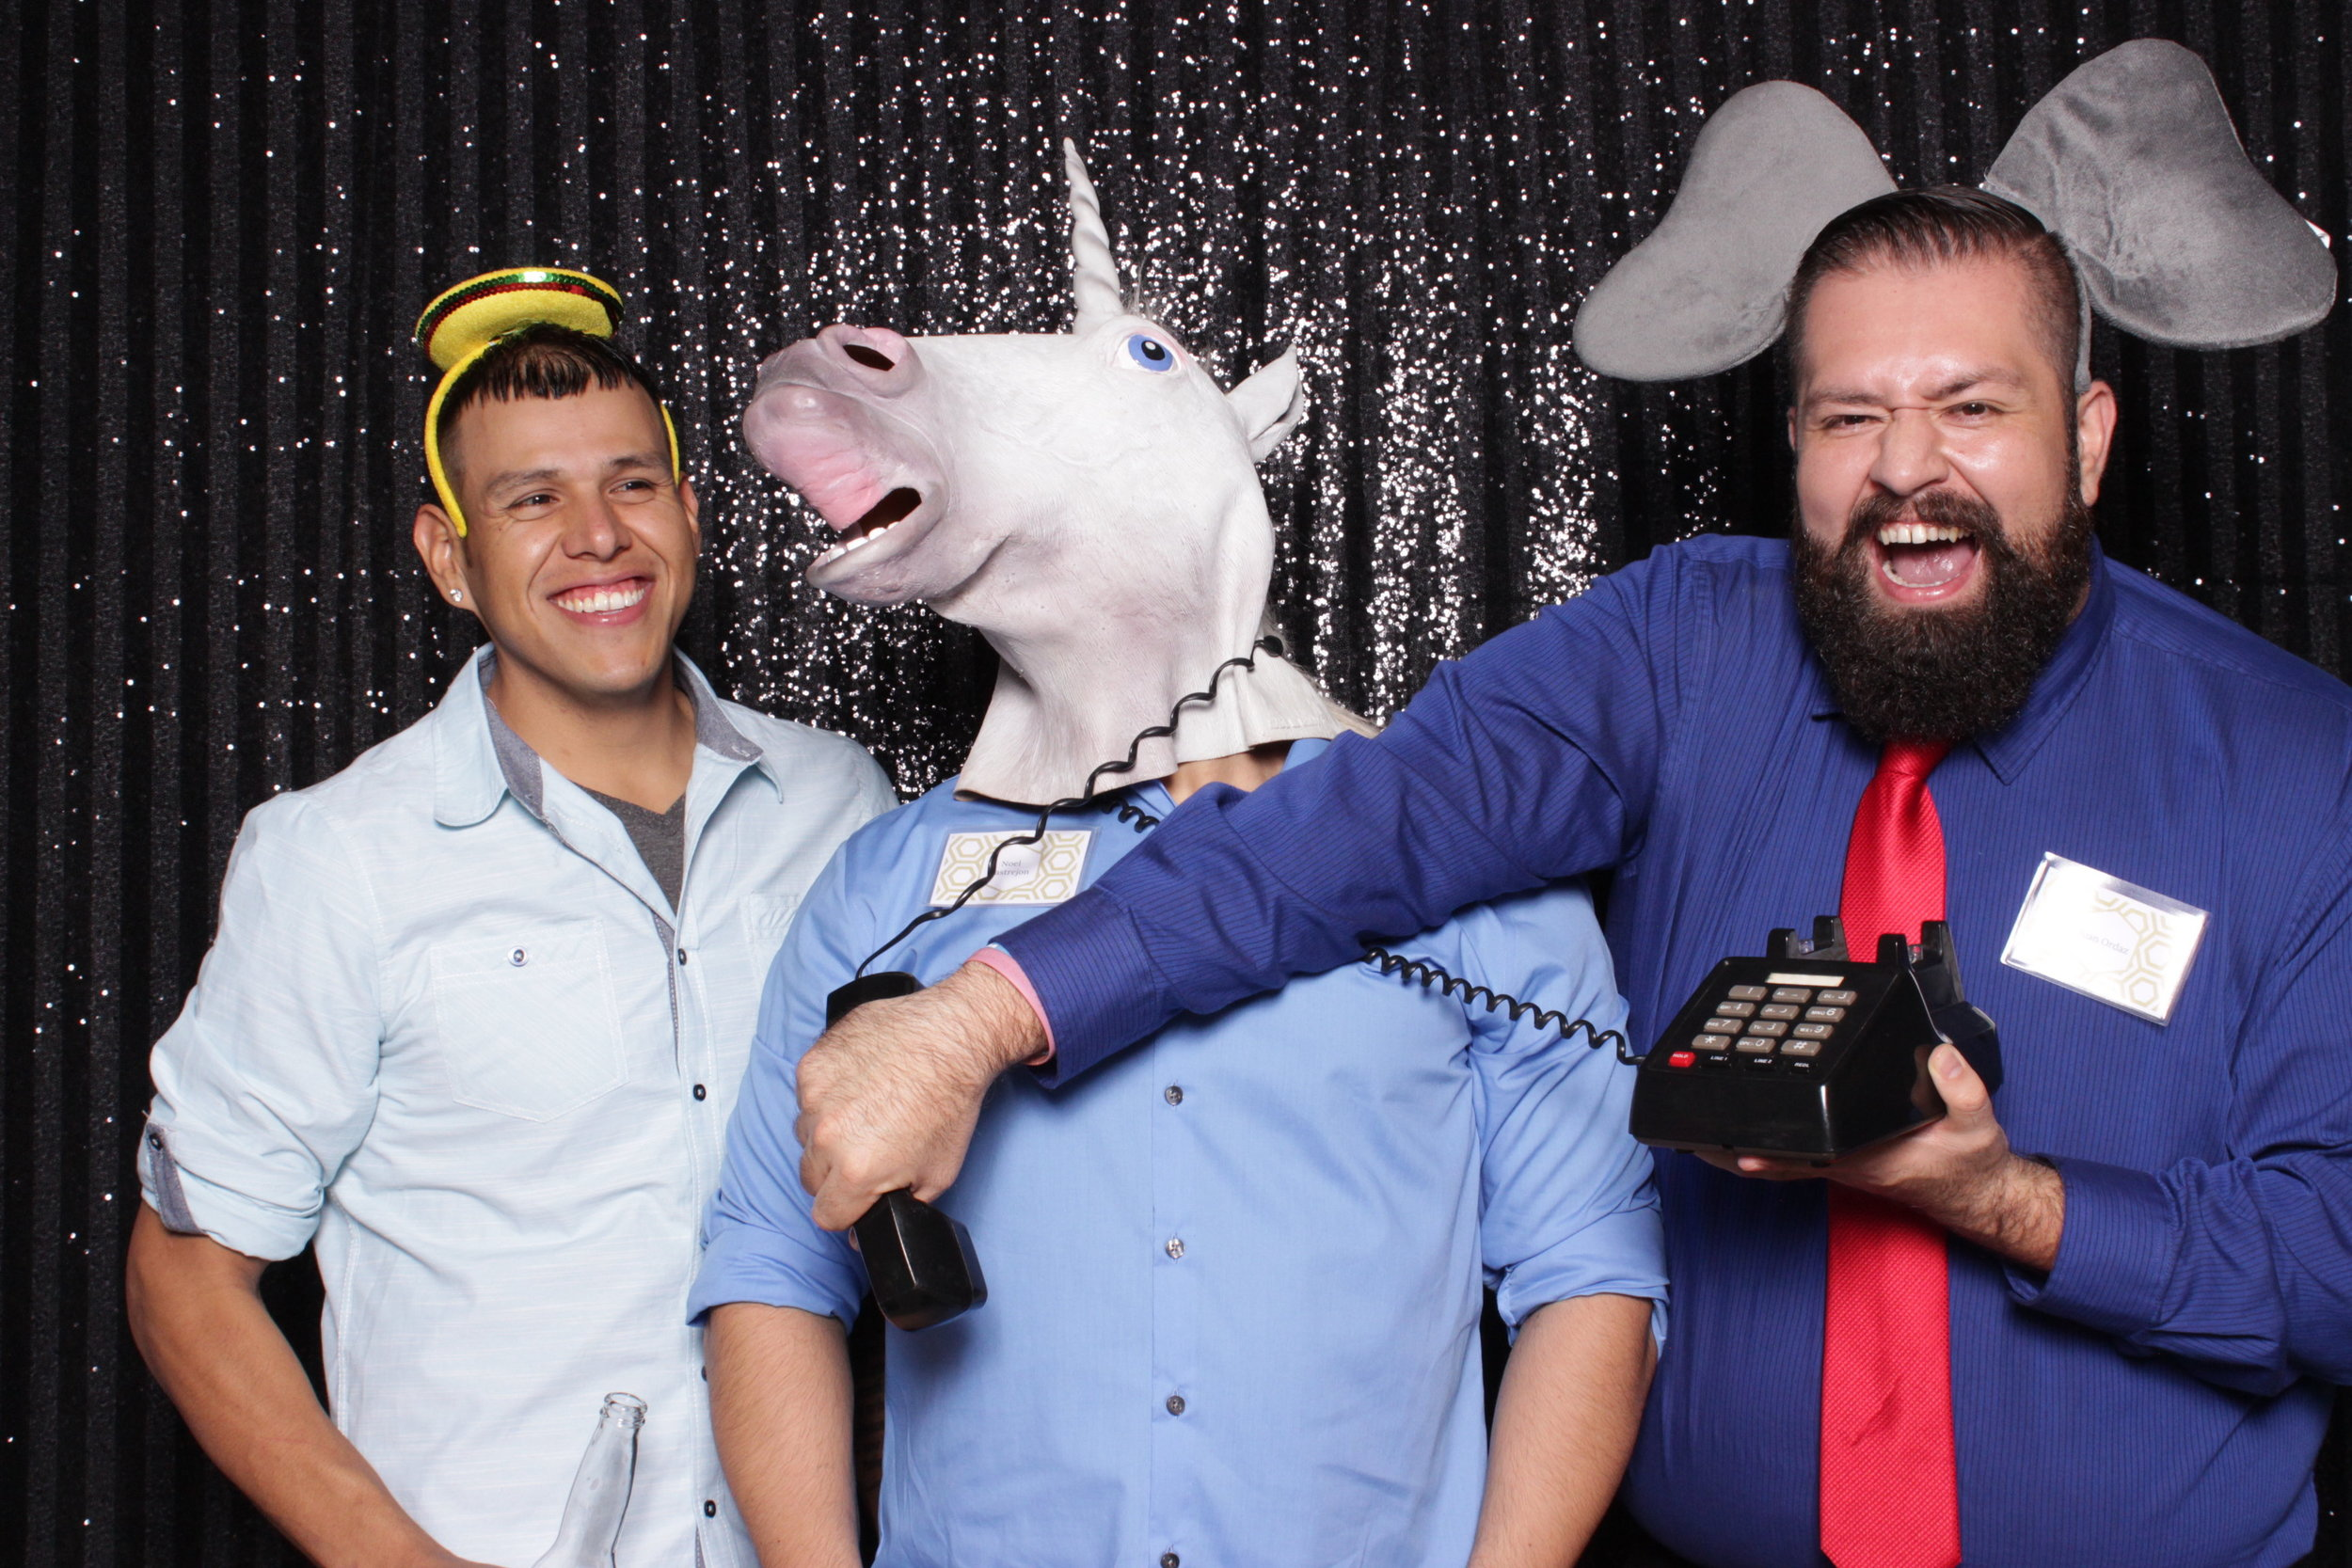 Chico-photo-booth-rental-copy-